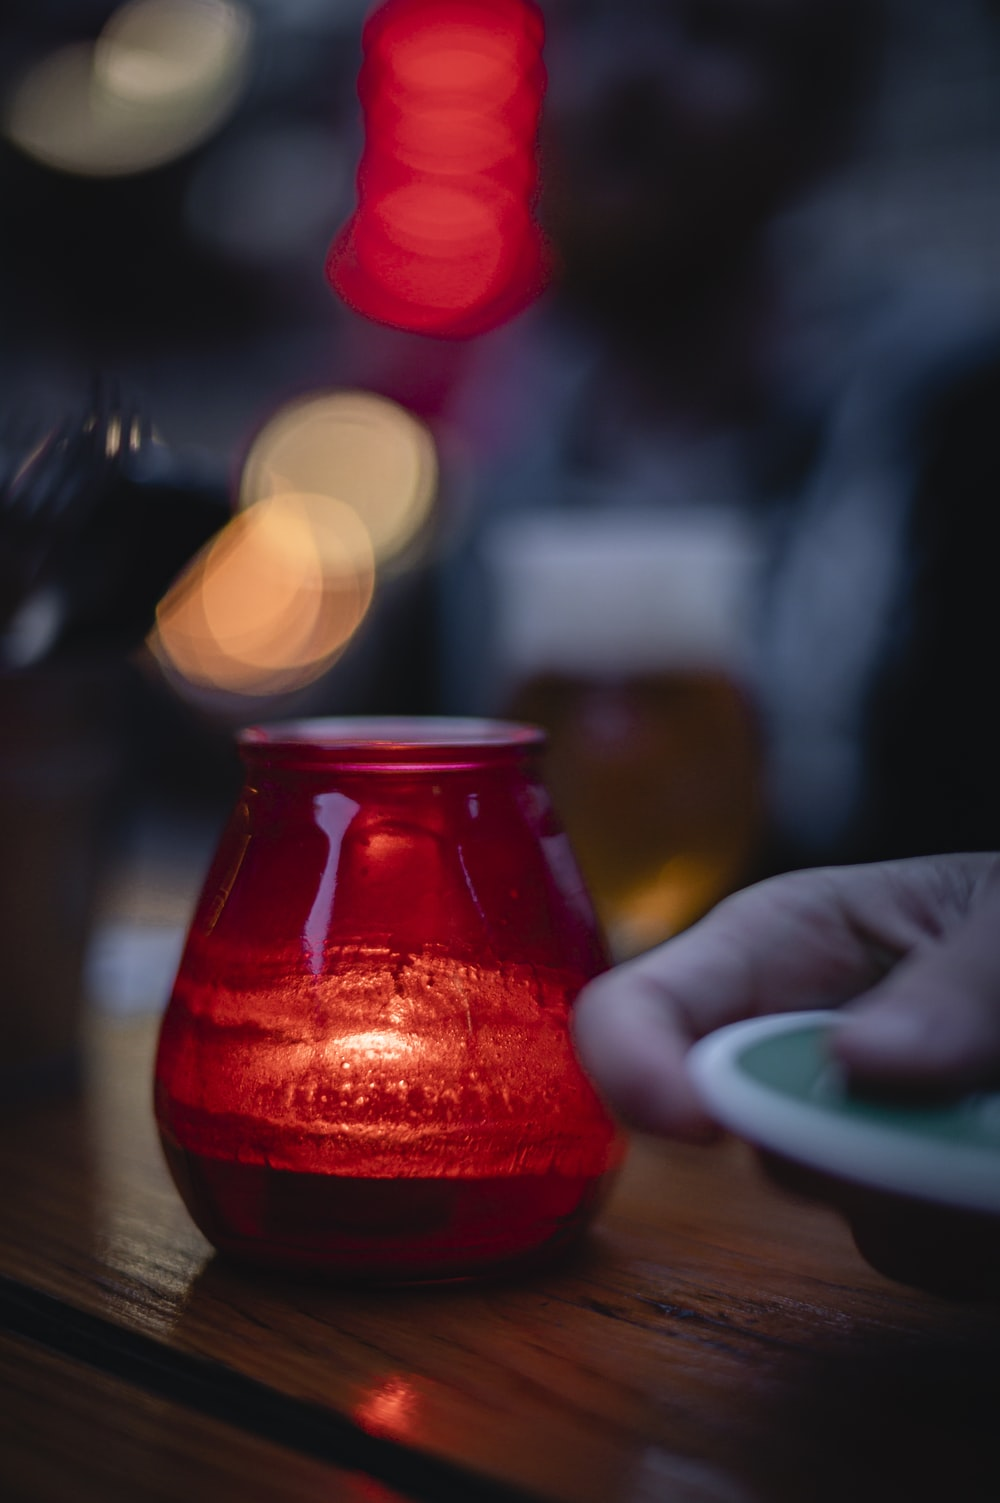 red glass jar with red liquid